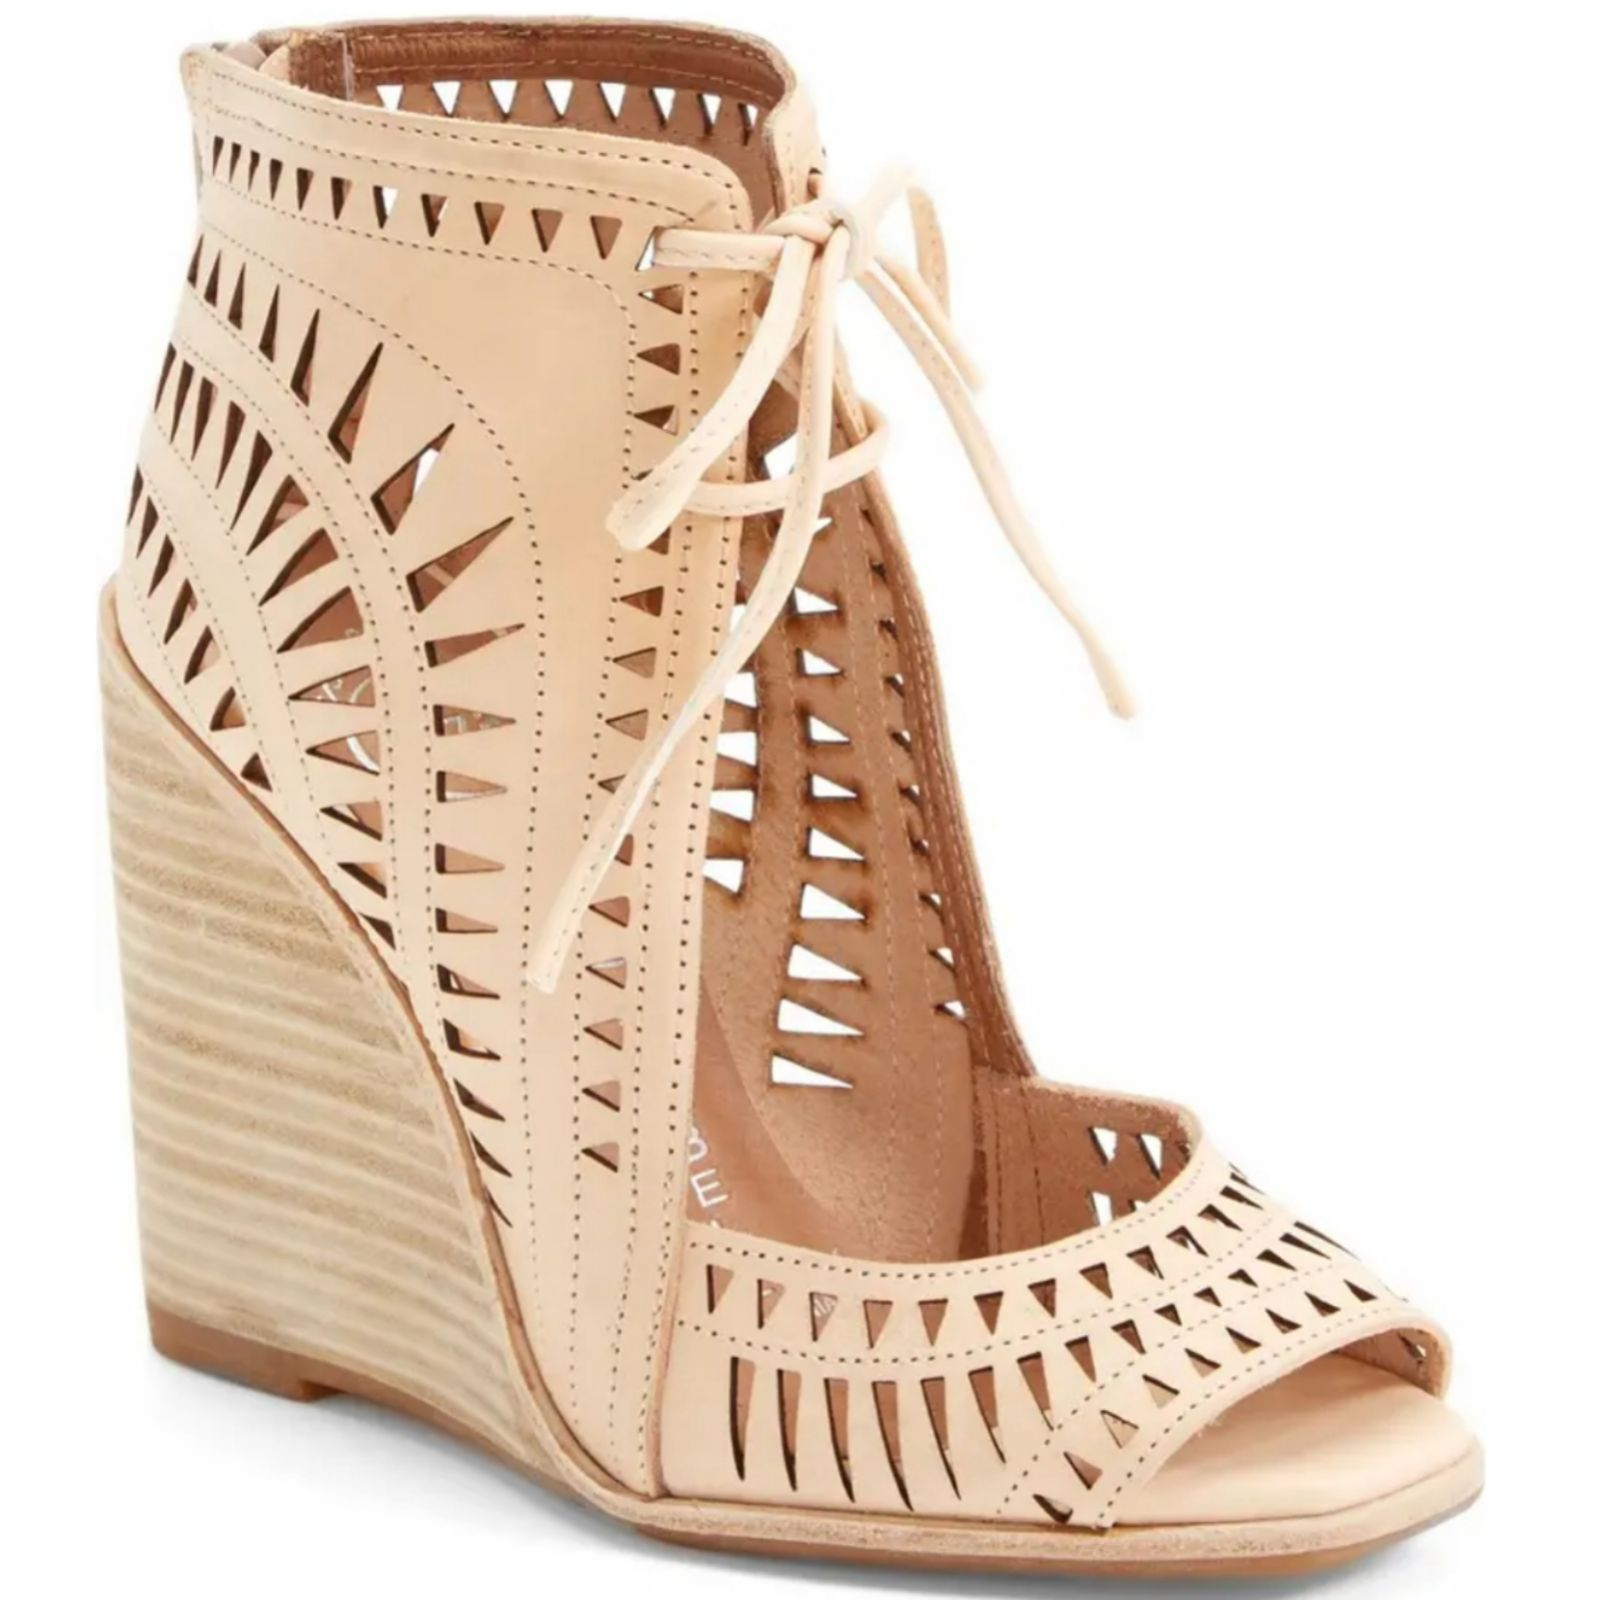 JEFFREY CAMPBELL Rodillo hi wedges 8